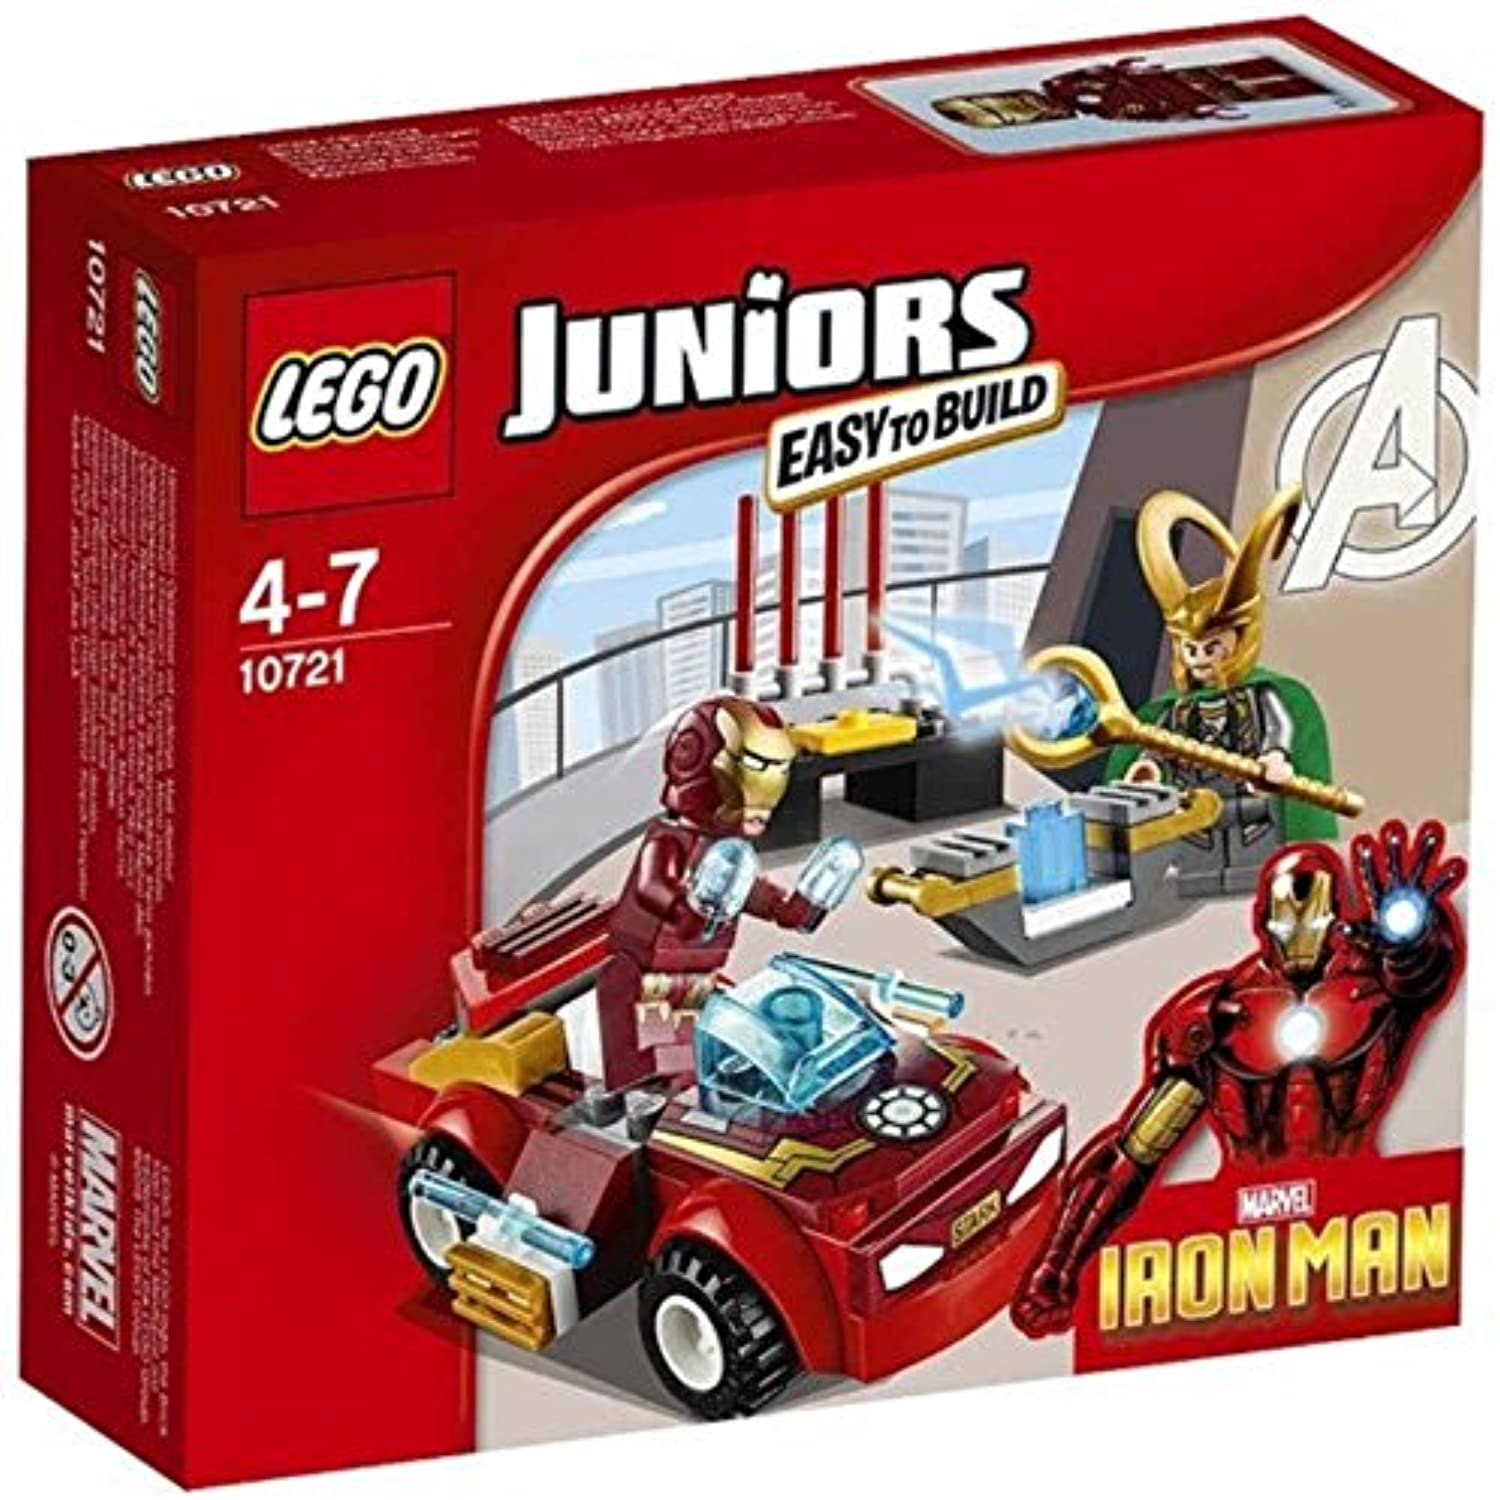 LEGO 10721 Juniors Iron Man vs Loki Playset